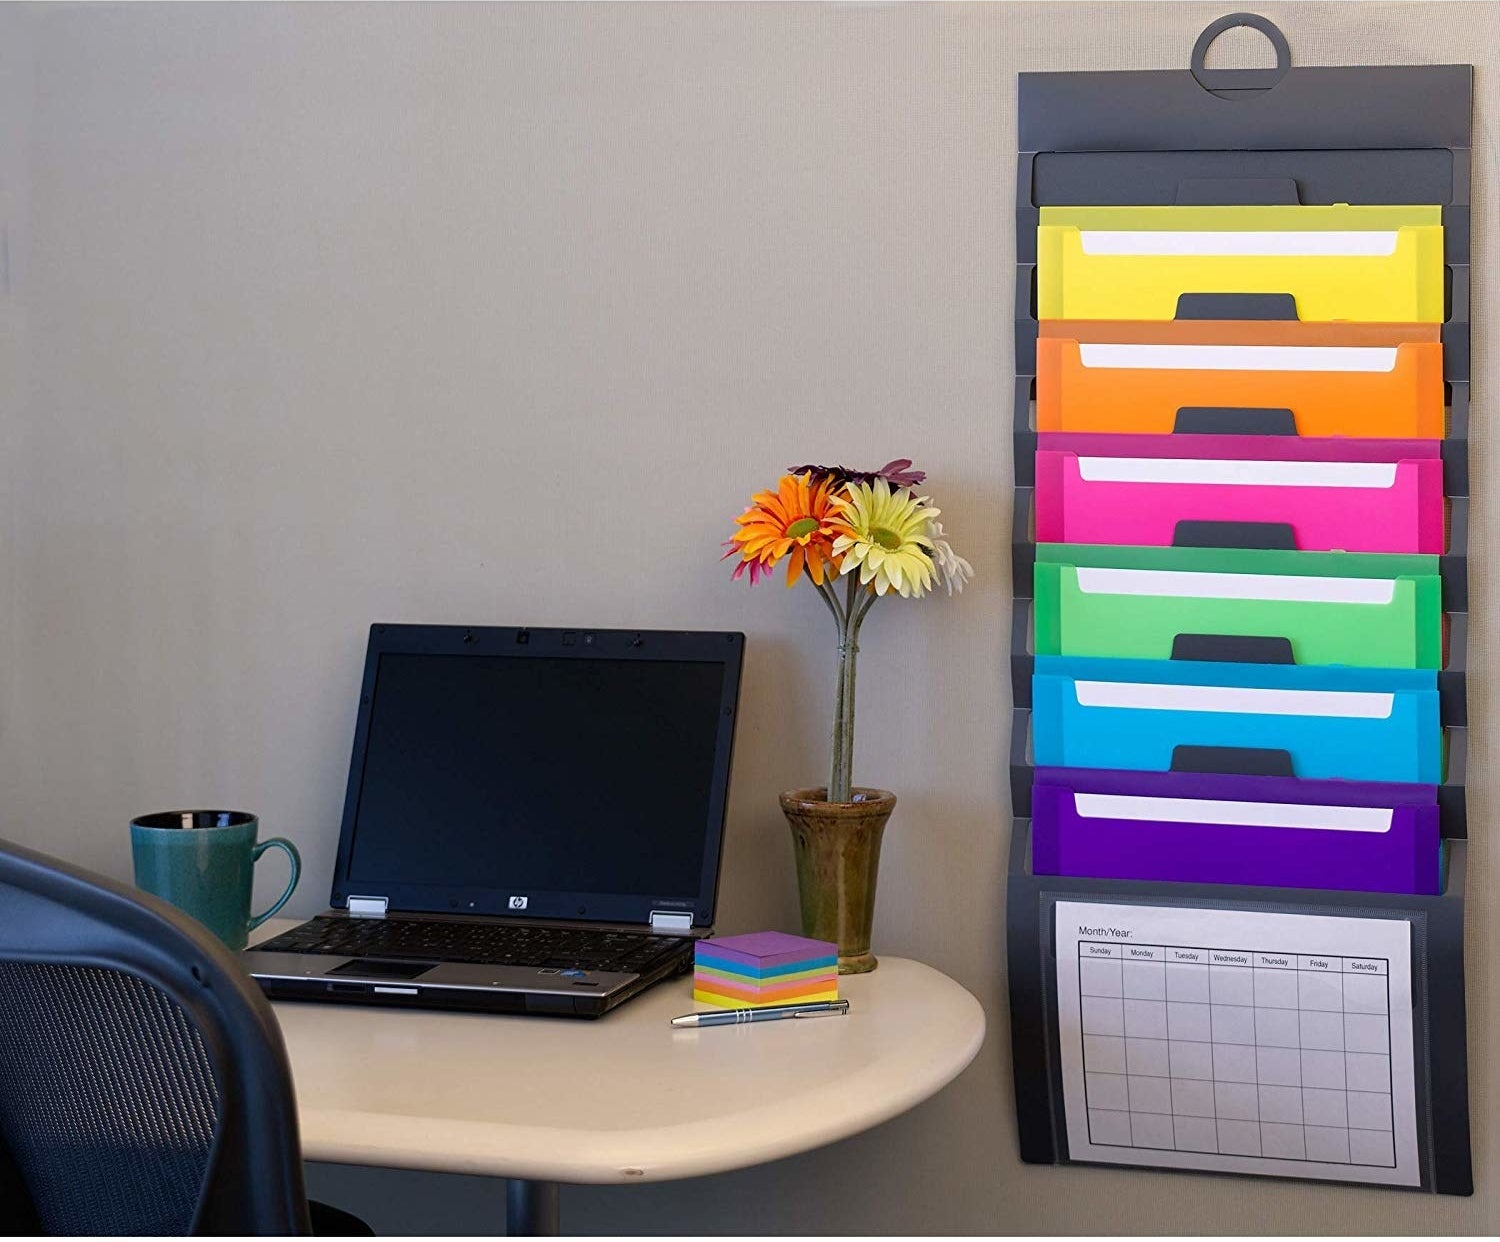 The organizer next to a desk. It lies flat against the wall, with yellow, orange, pink, green, blue, and purple pockets in addition to the clear one